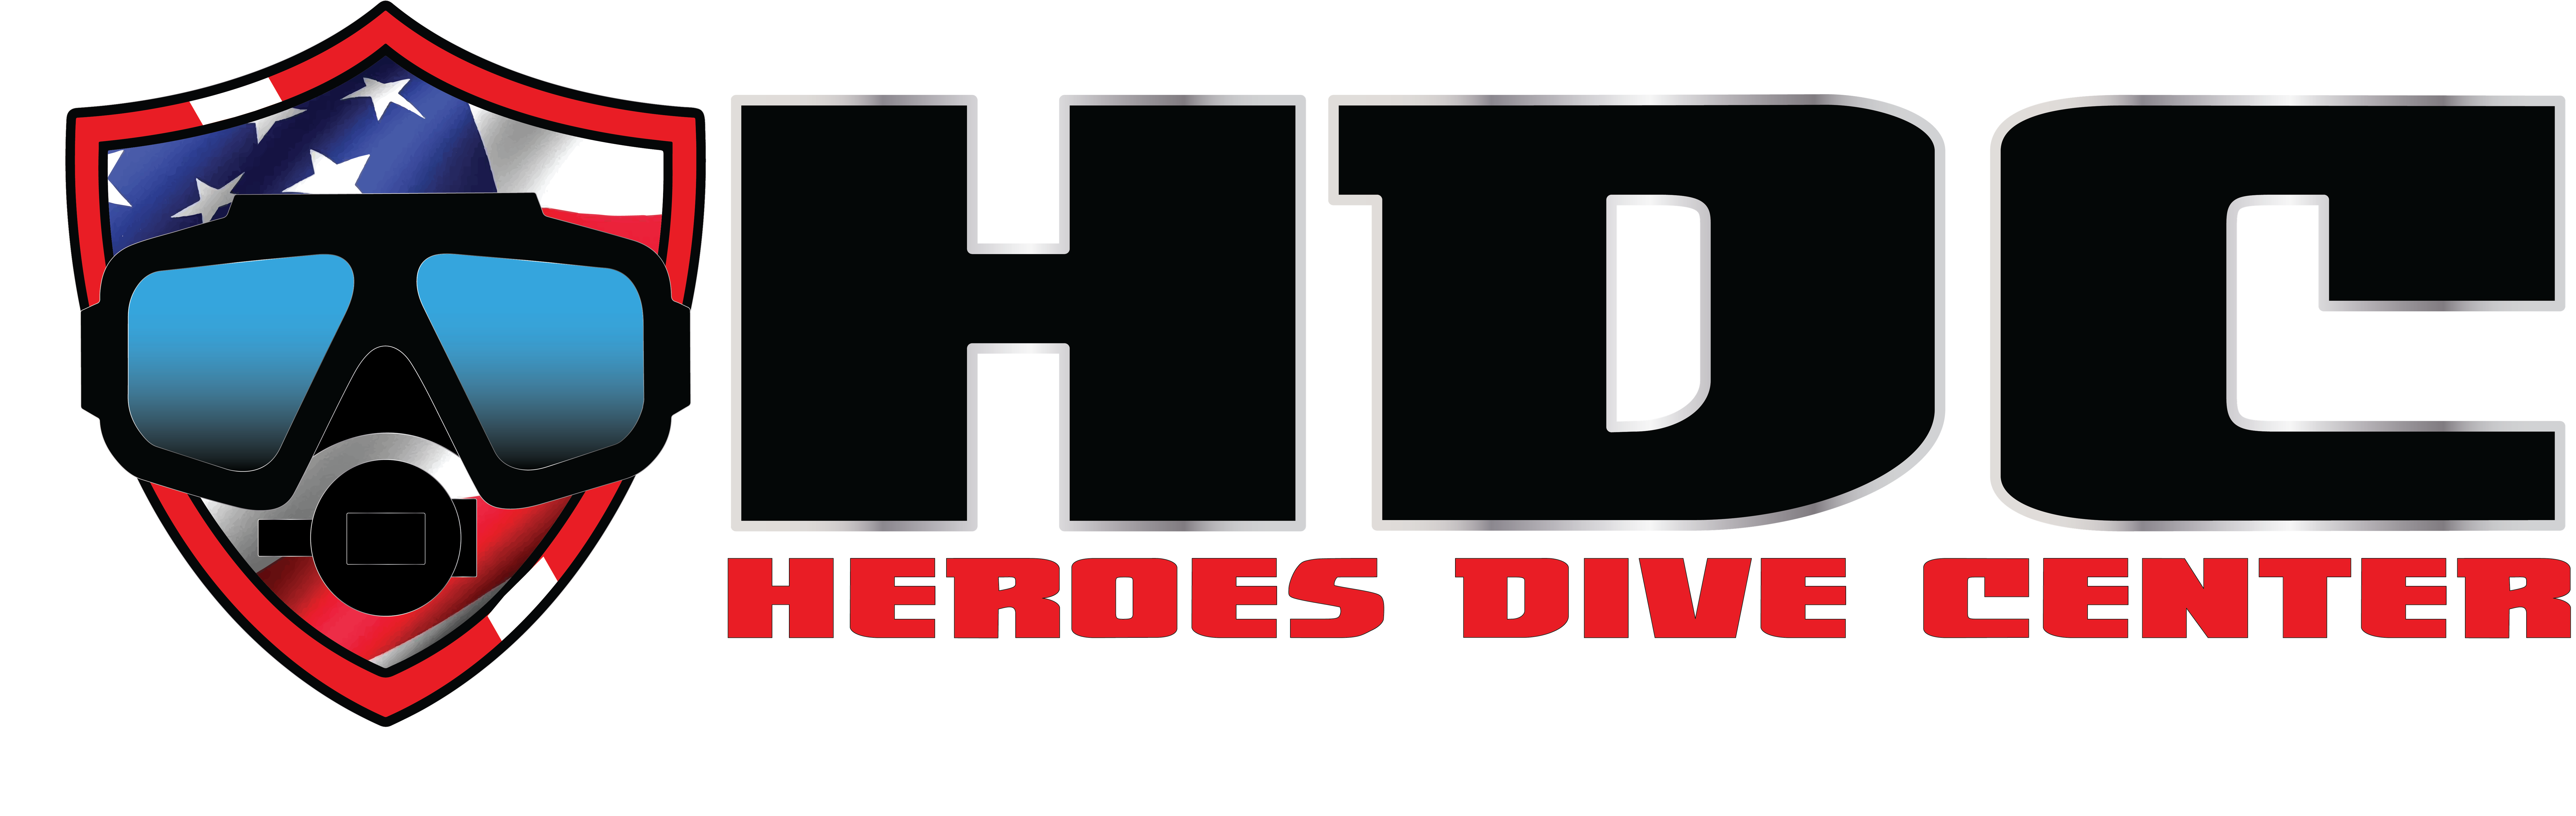 Heroes Dive Center